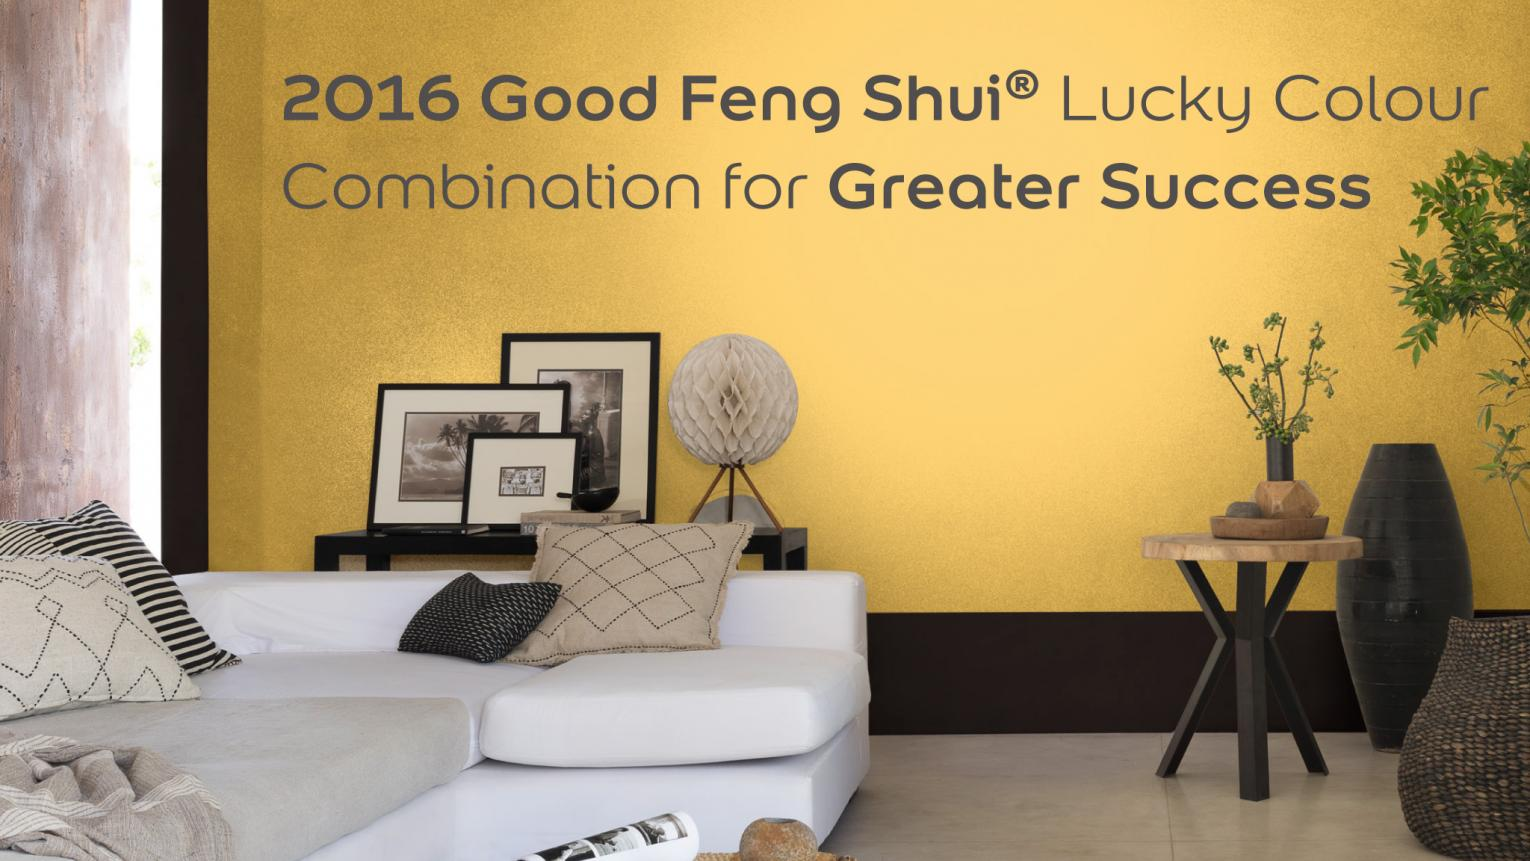 Good Feng Shui 2016 - Section 12